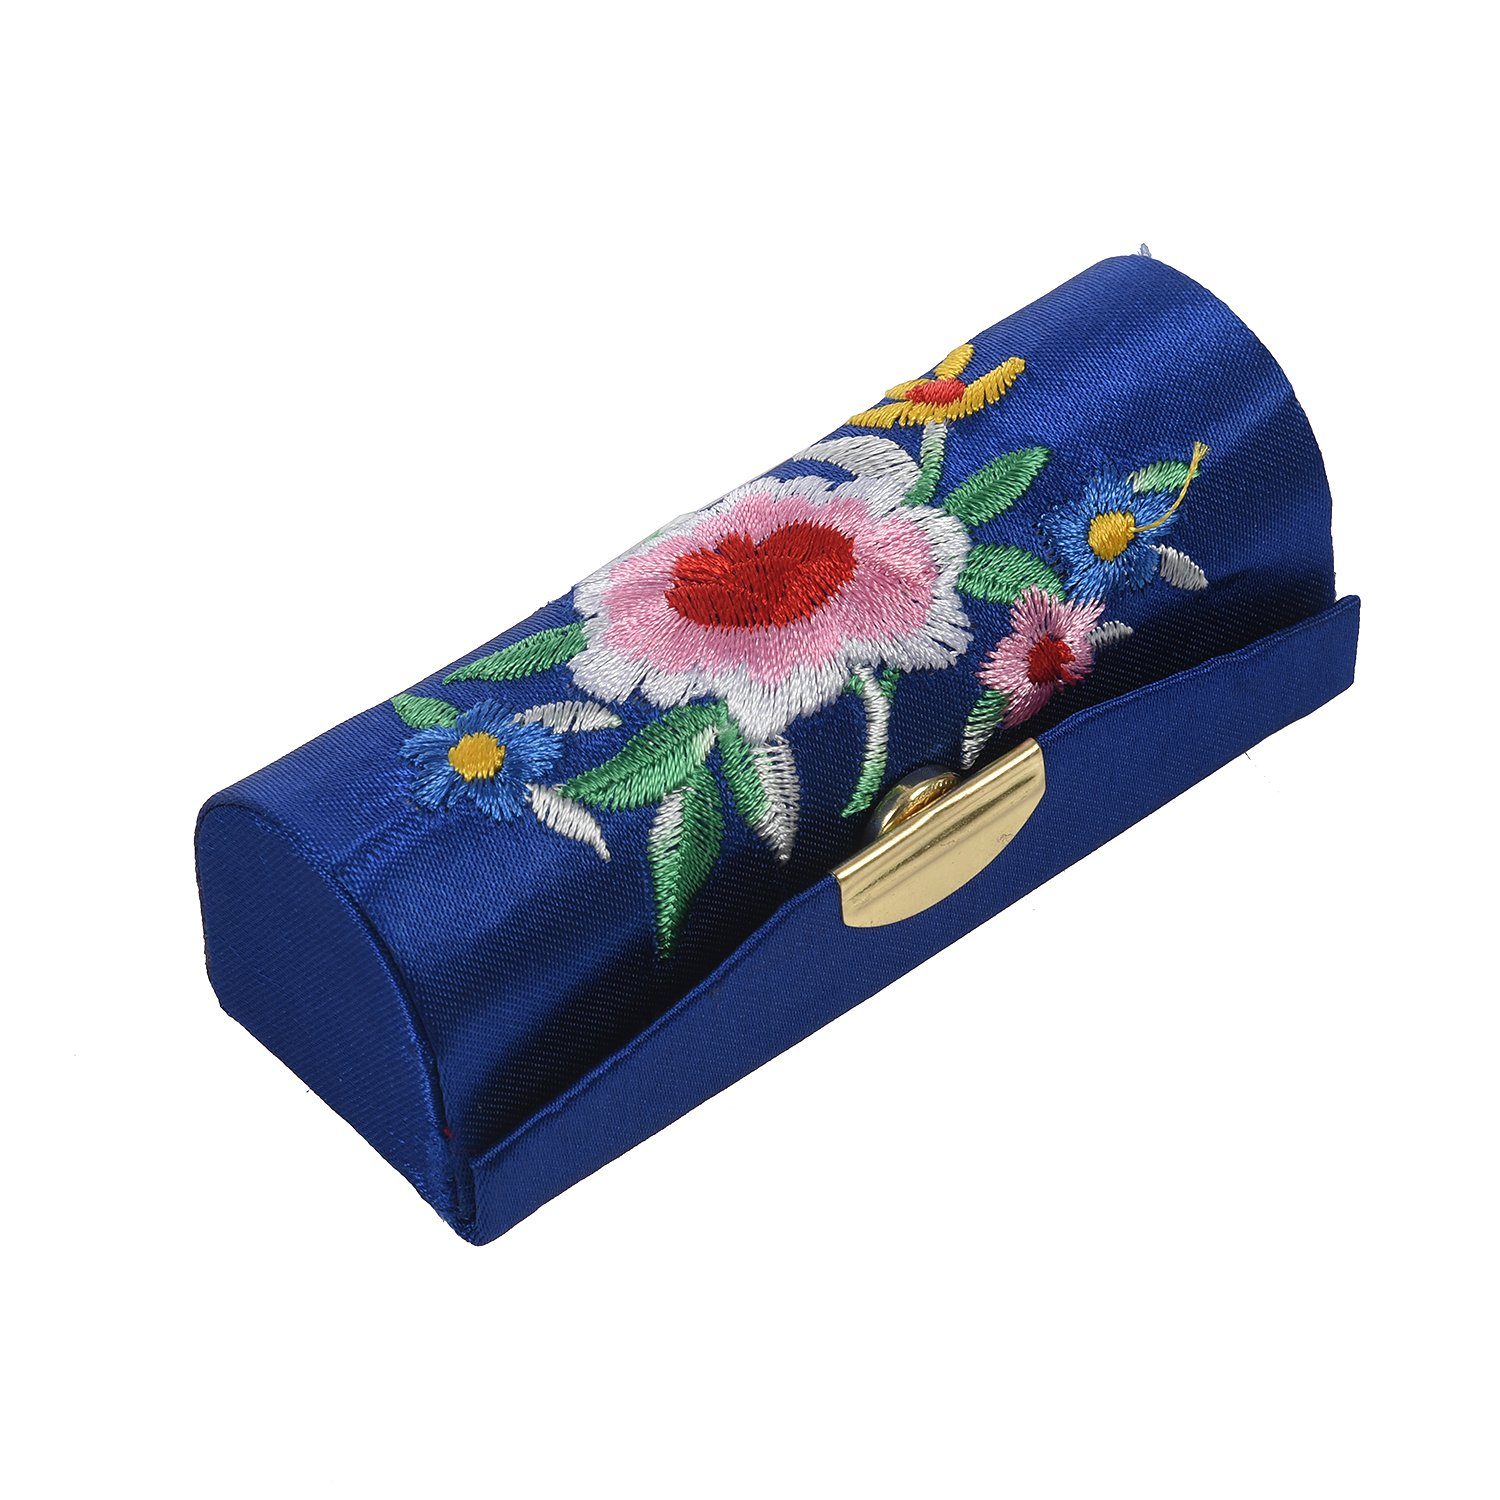 TOOGOO(R) Lady Floral Embroidery Mirror Lipgloss Lip Stick Case Jewelry Lipstick Box Holder Dark Blue SODIAL(R)